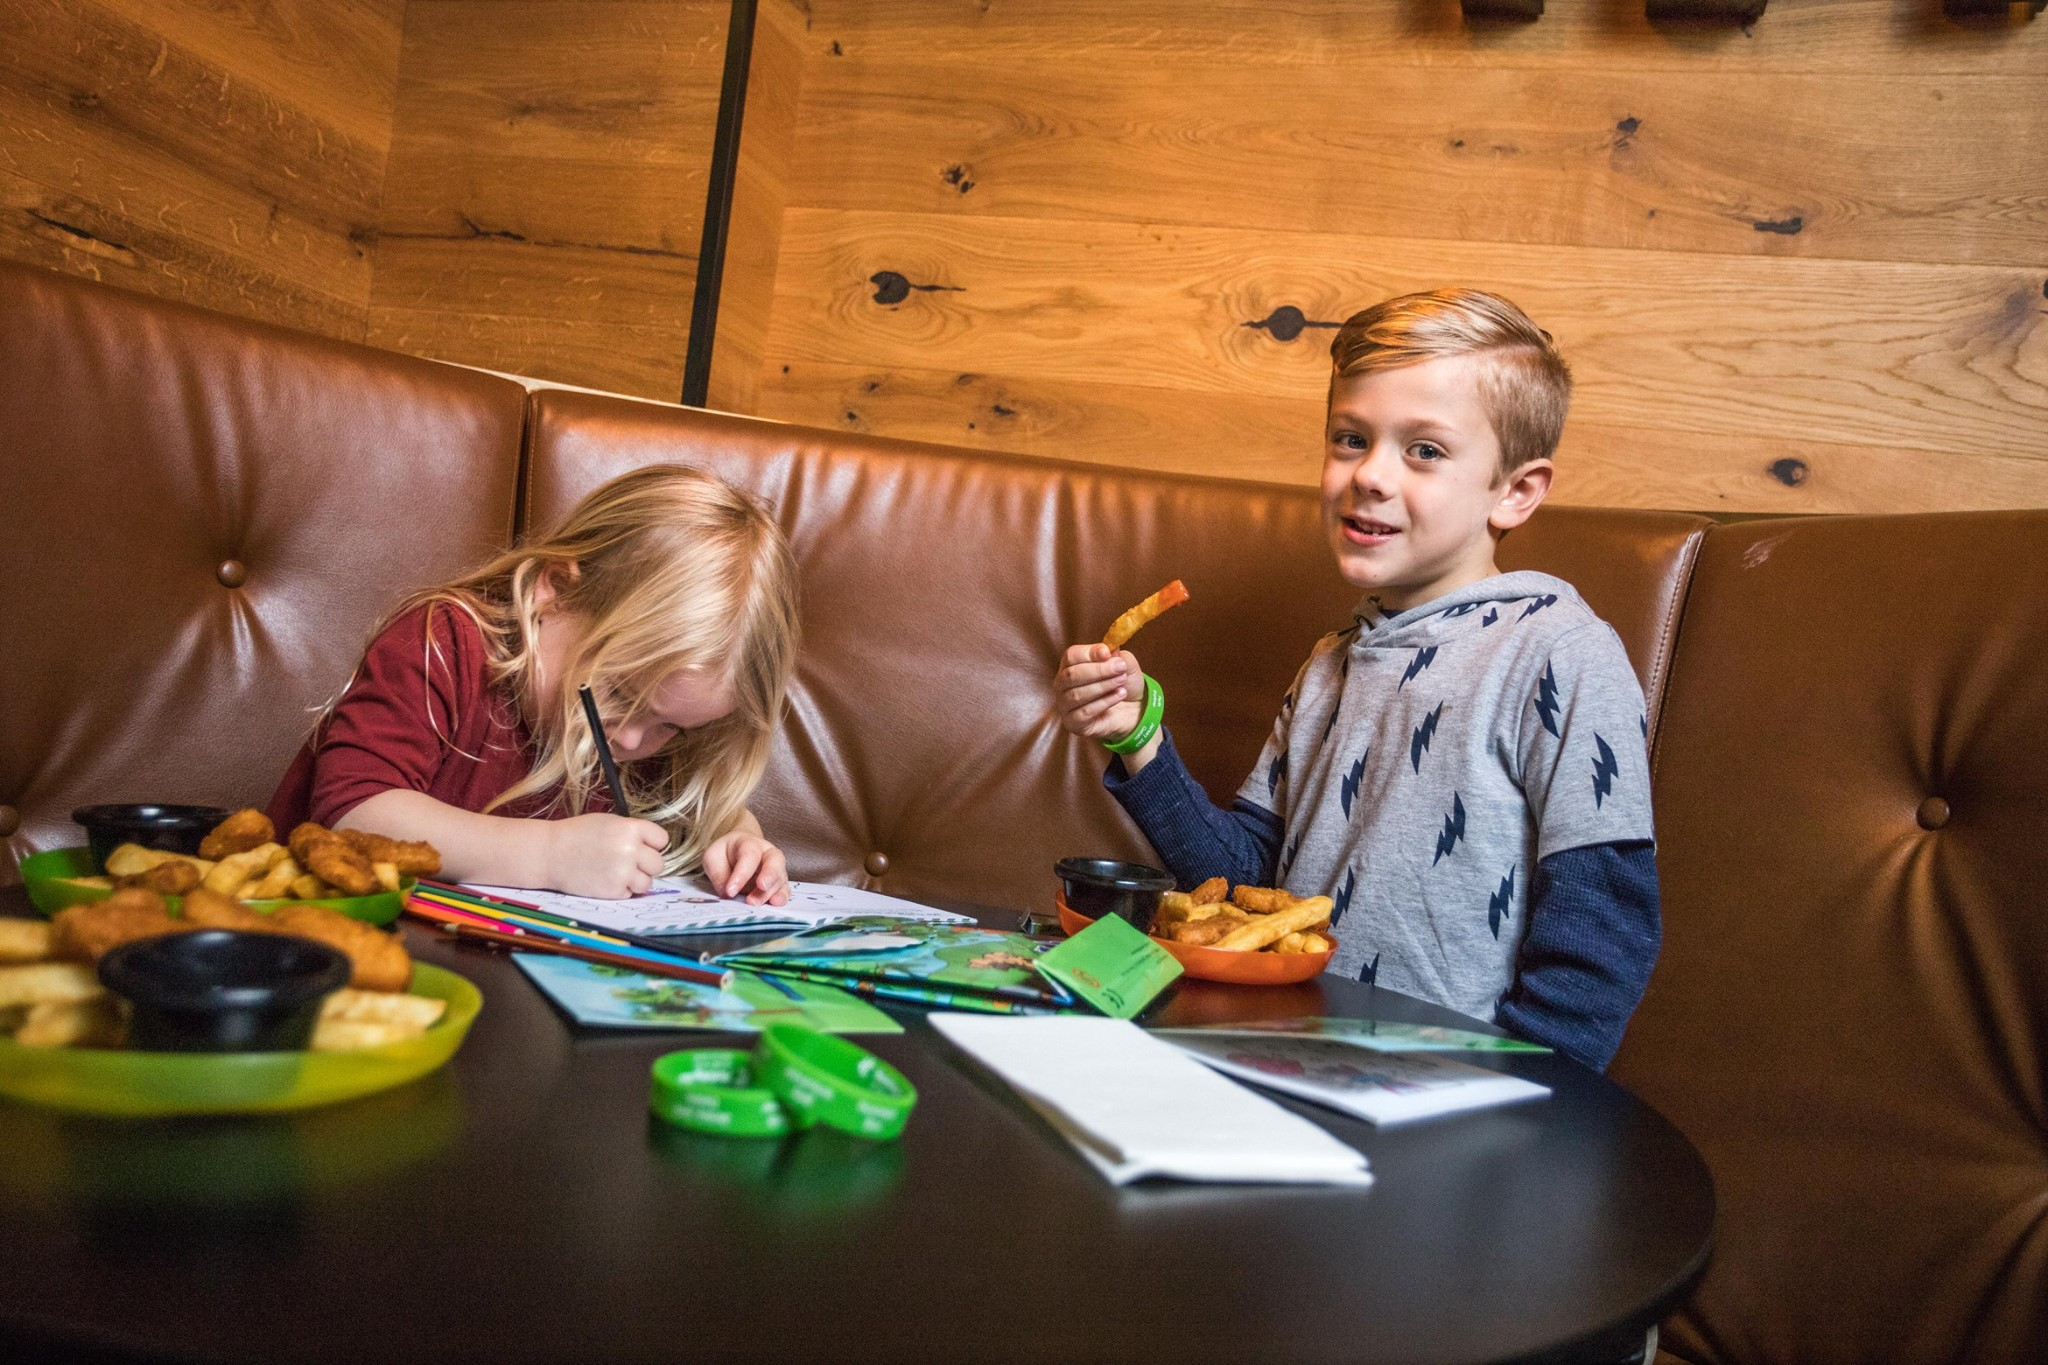 Kids eating a meal and colouring at Ivy & Jack restaurant